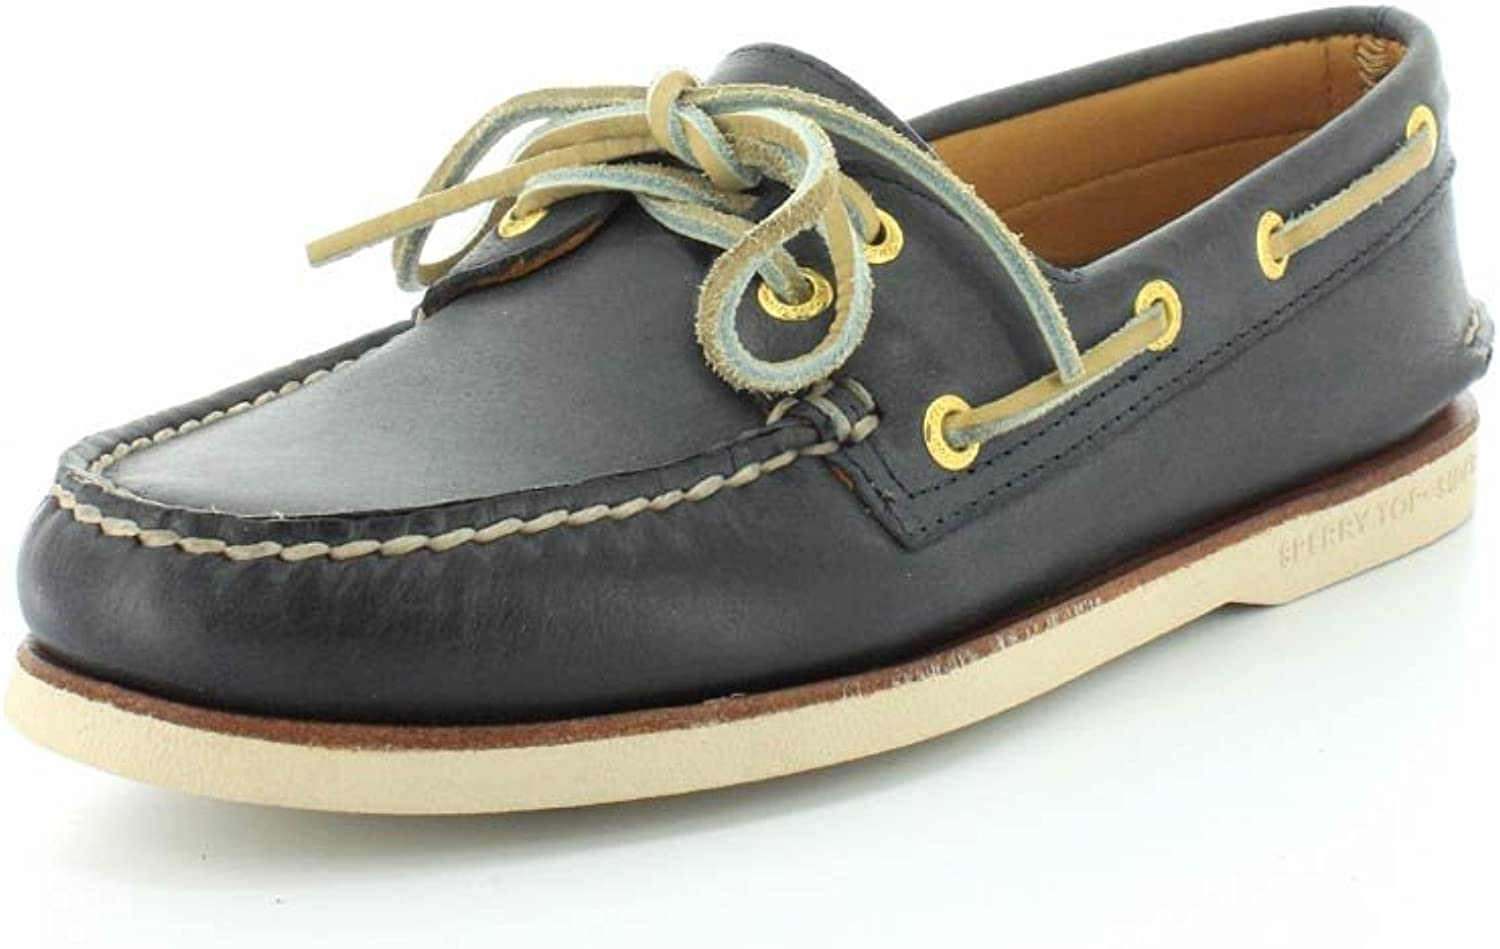 Sperry Womens STS93205 Boat shoes